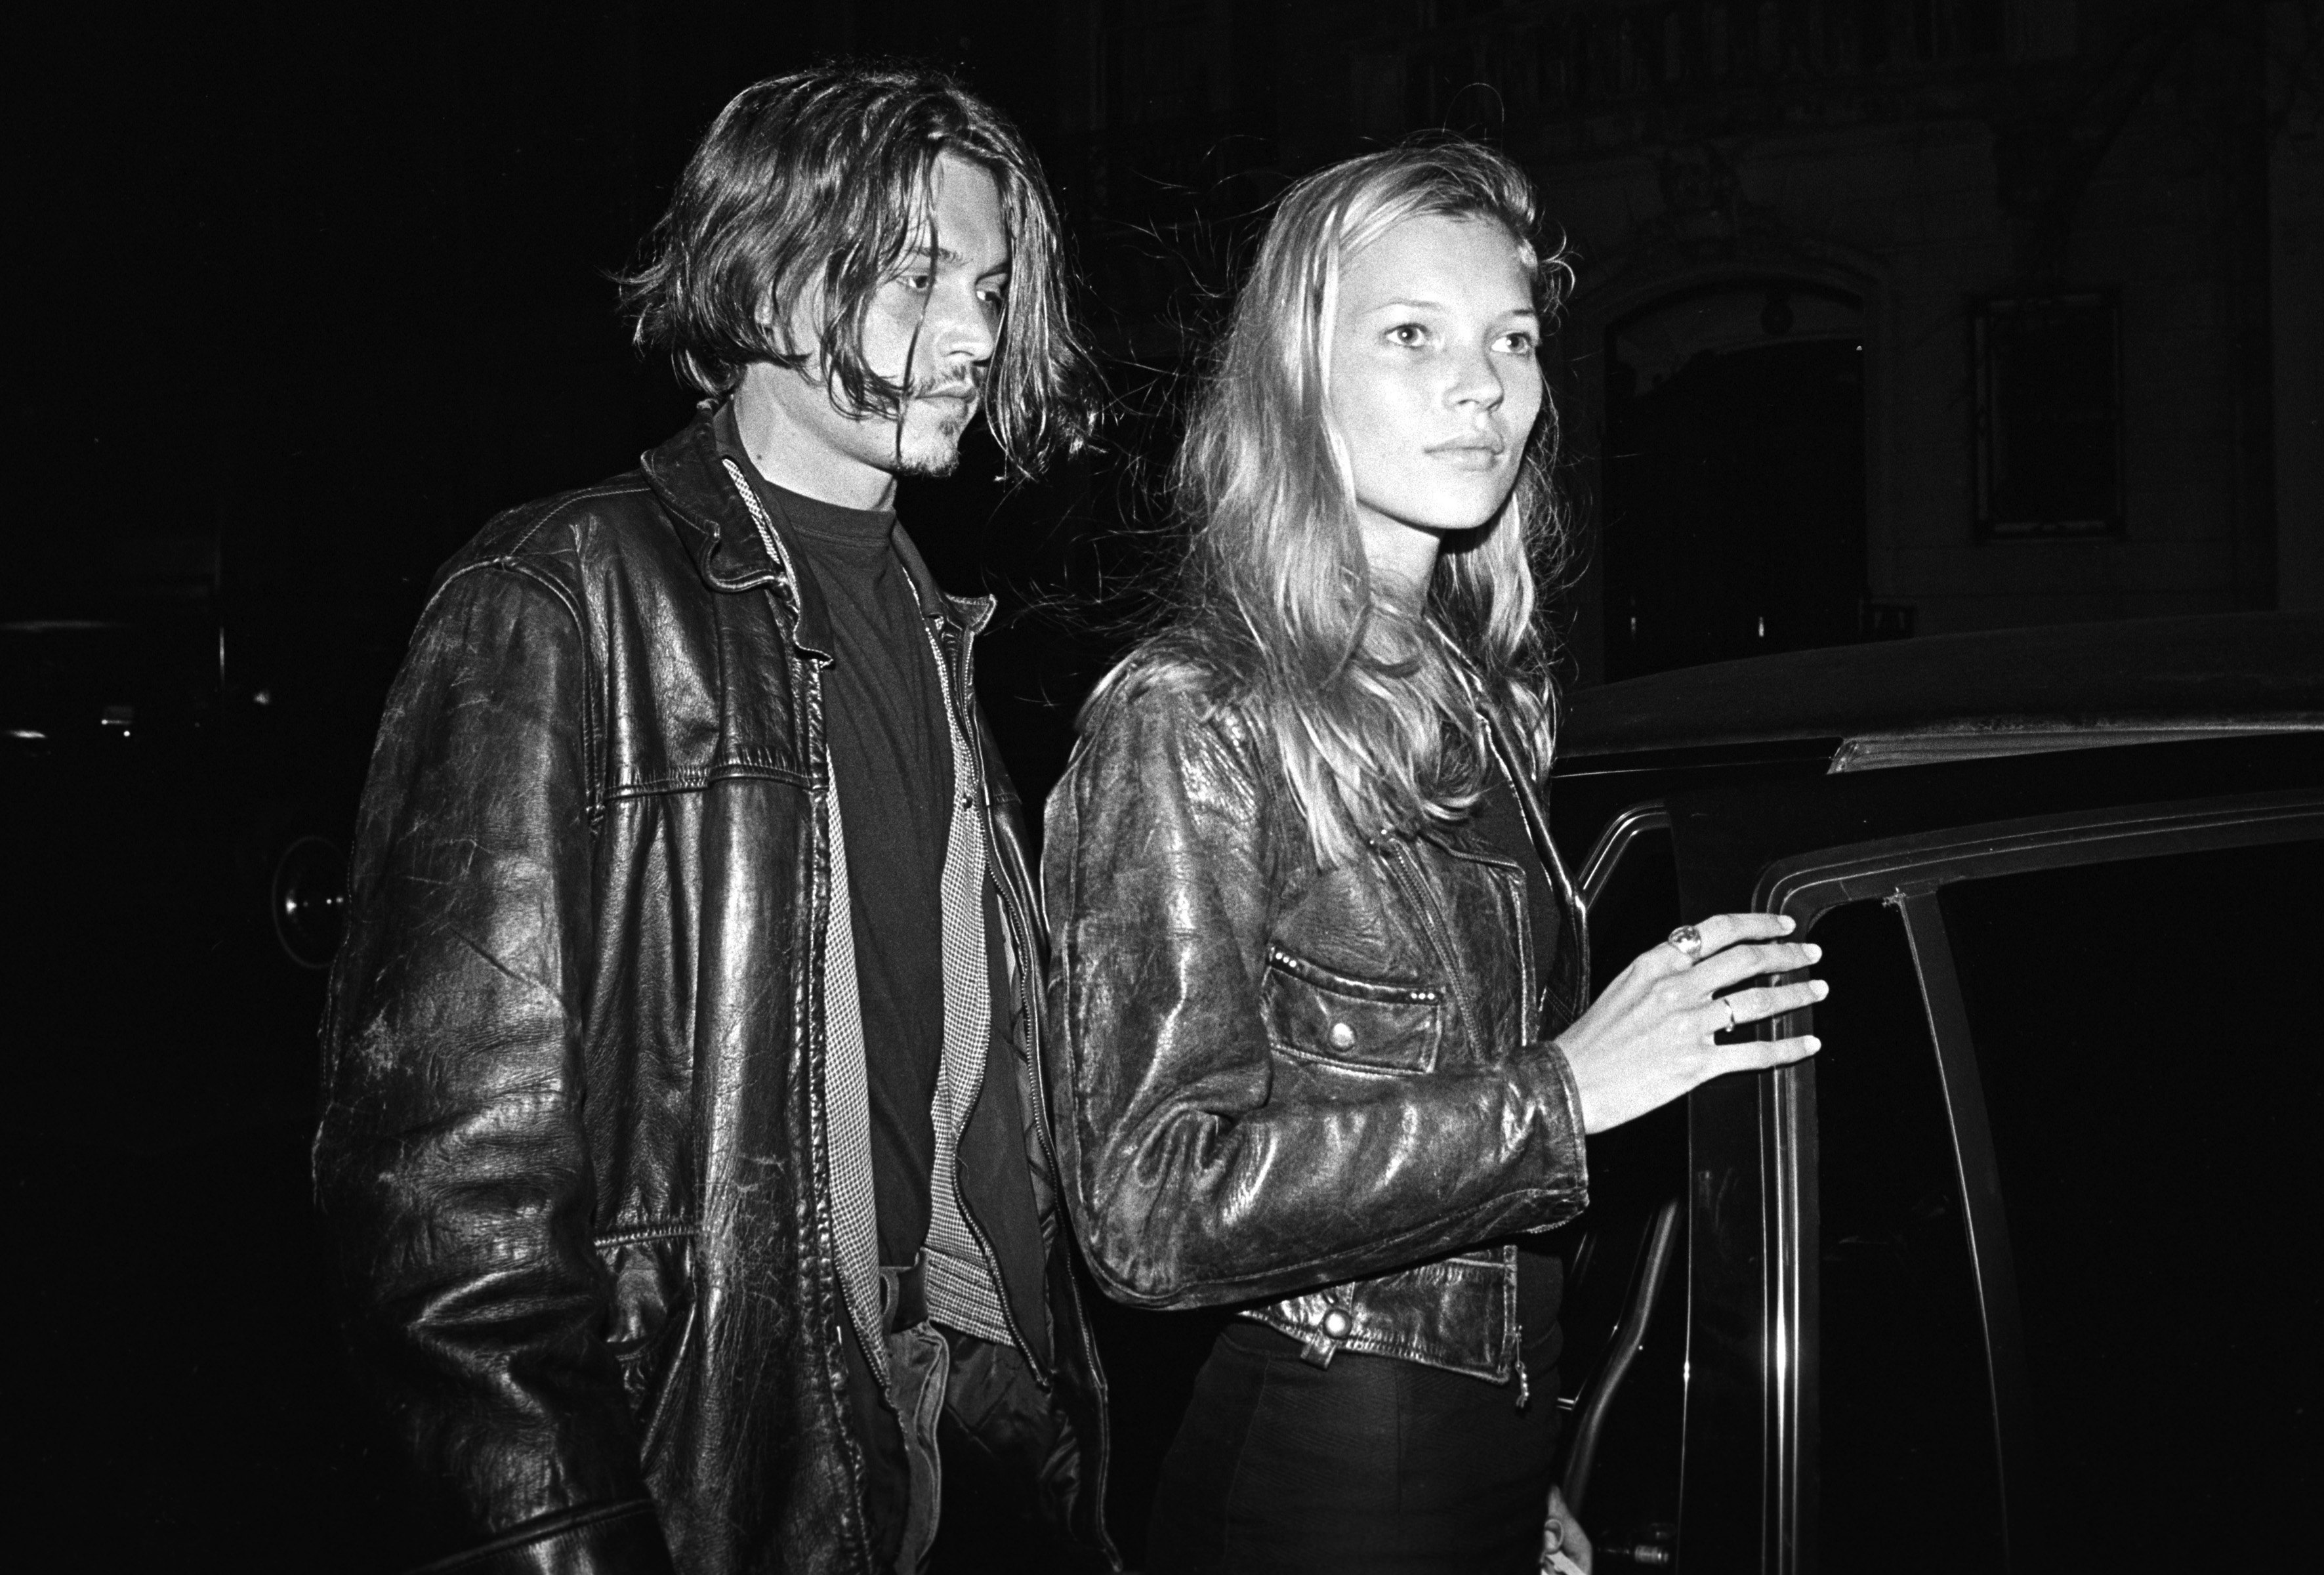 NEW YORK - 1994:  British supermodel Kate Moss (R) and American actor Johnny Depp leaving  a party for John Waters' film 'Ser